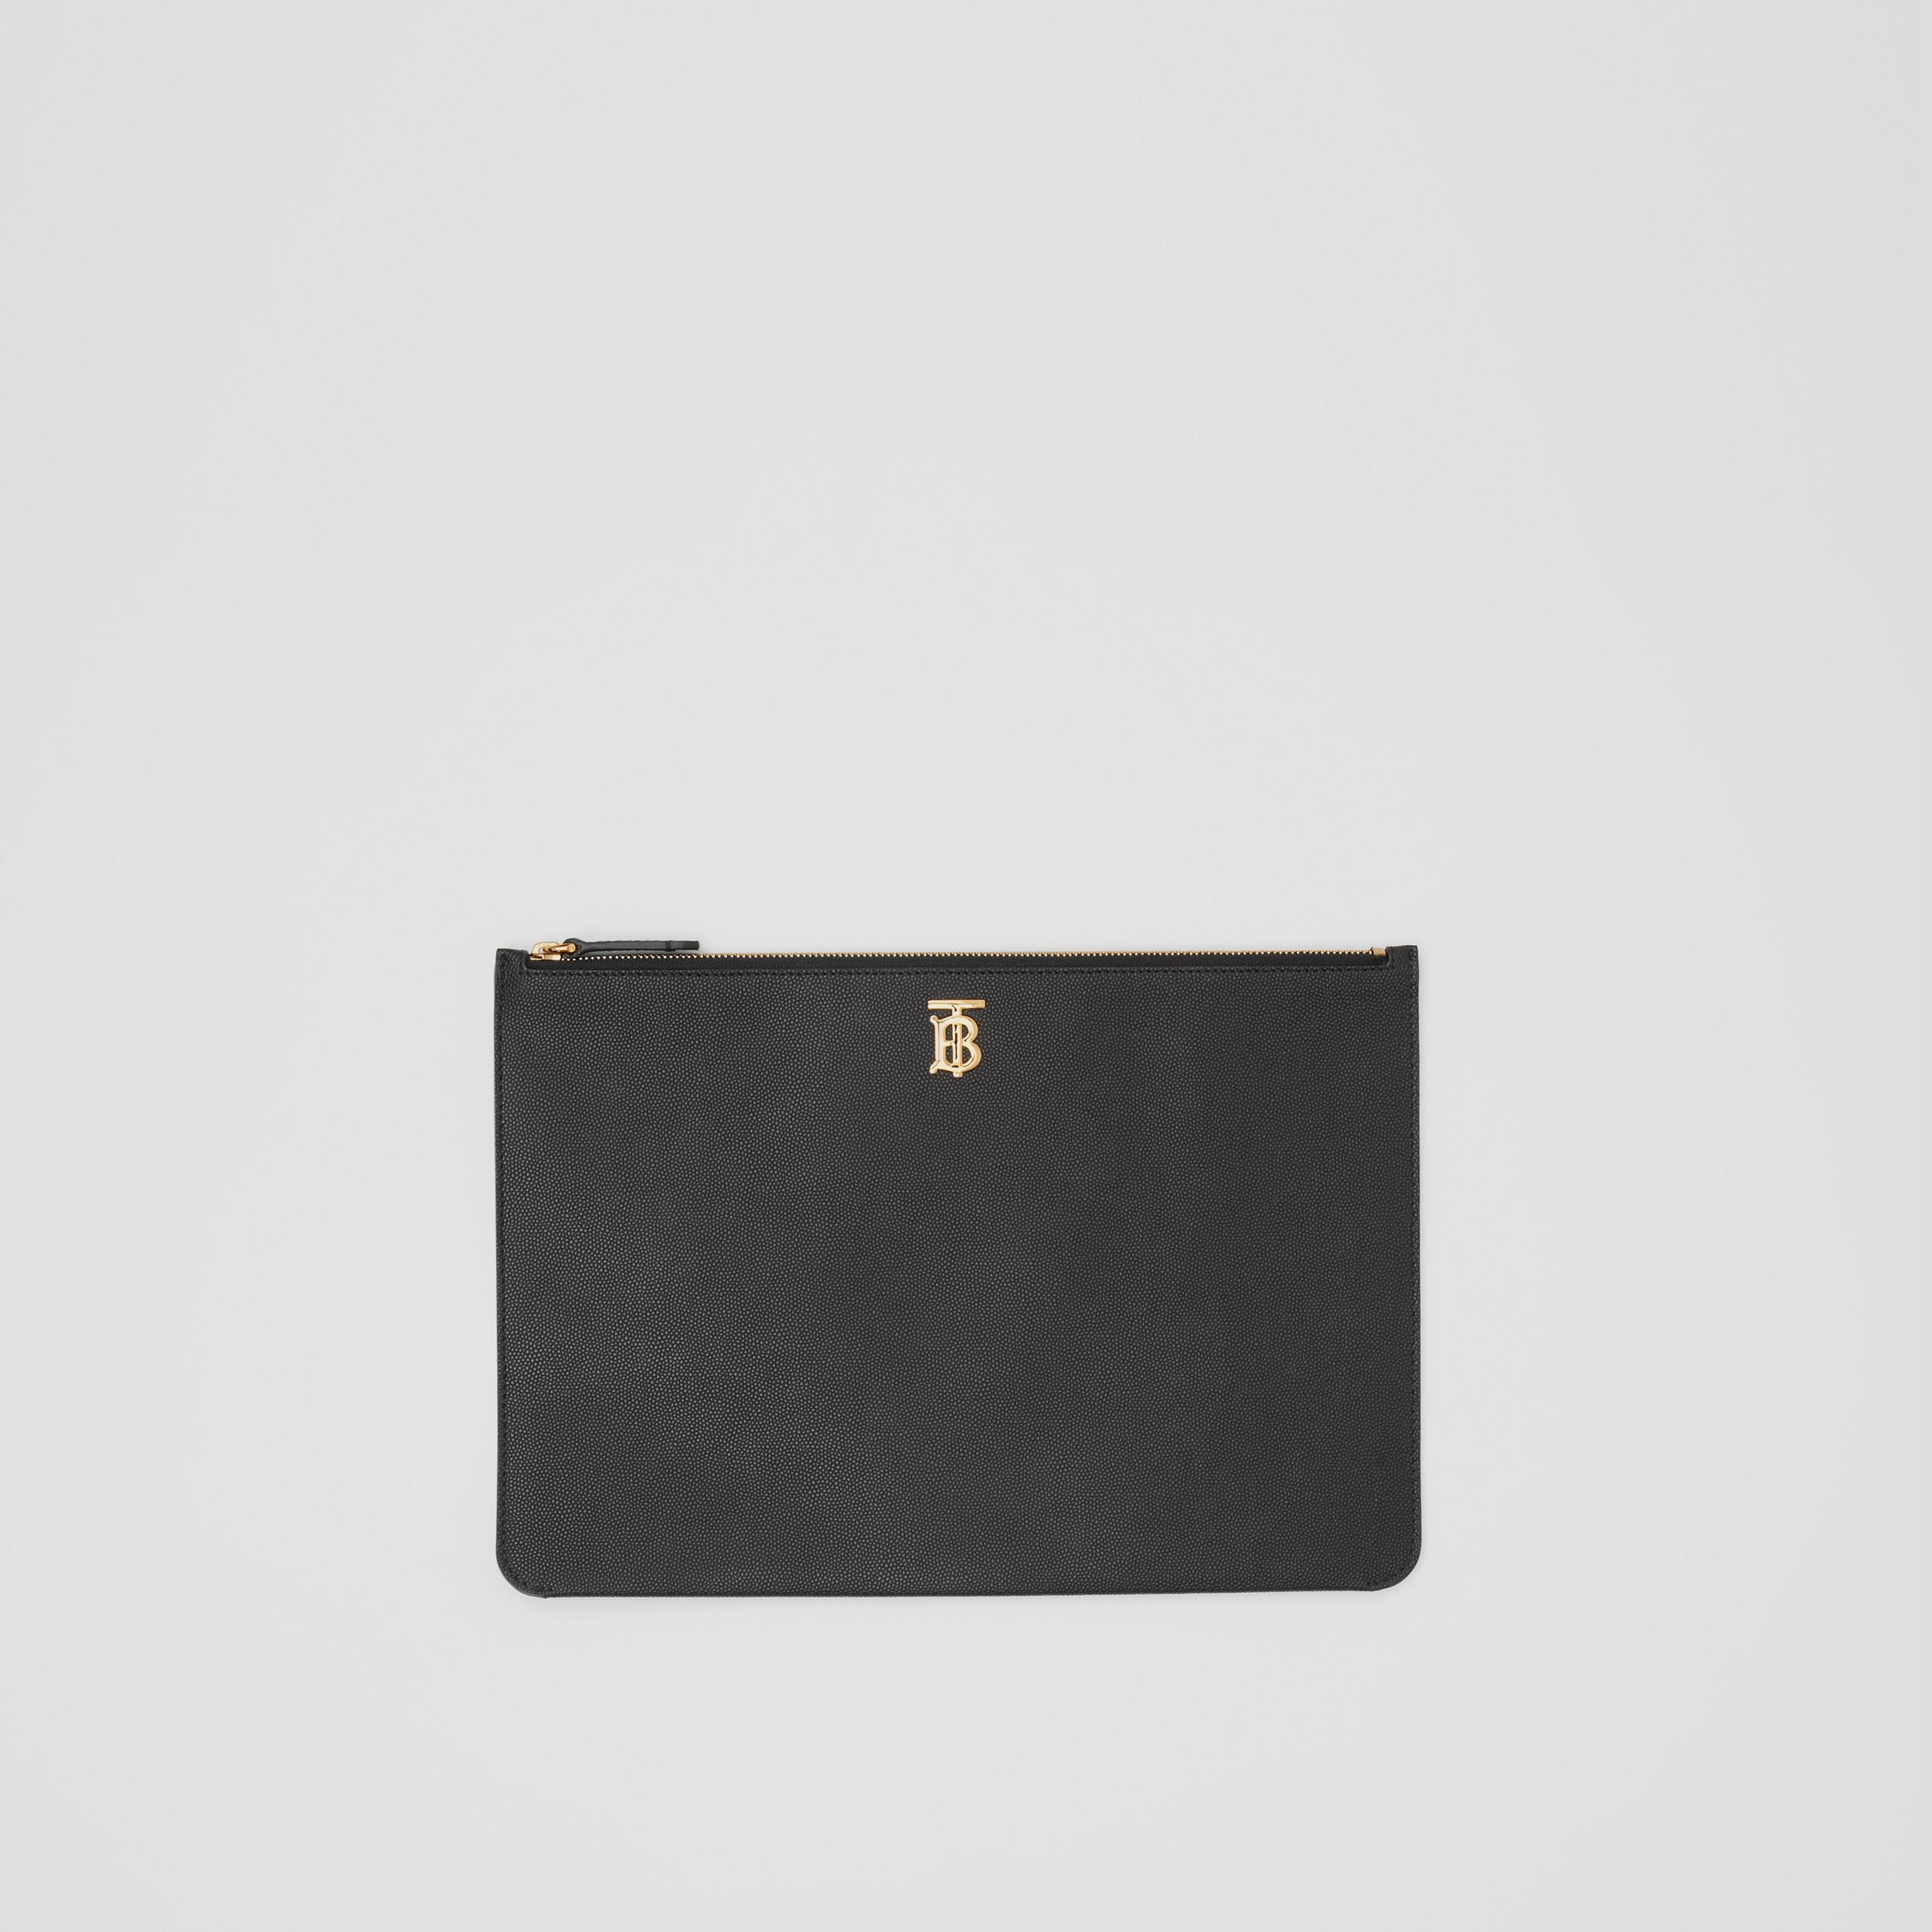 Monogram Motif Grainy Leather Pouch in Black - Women | Burberry - 1